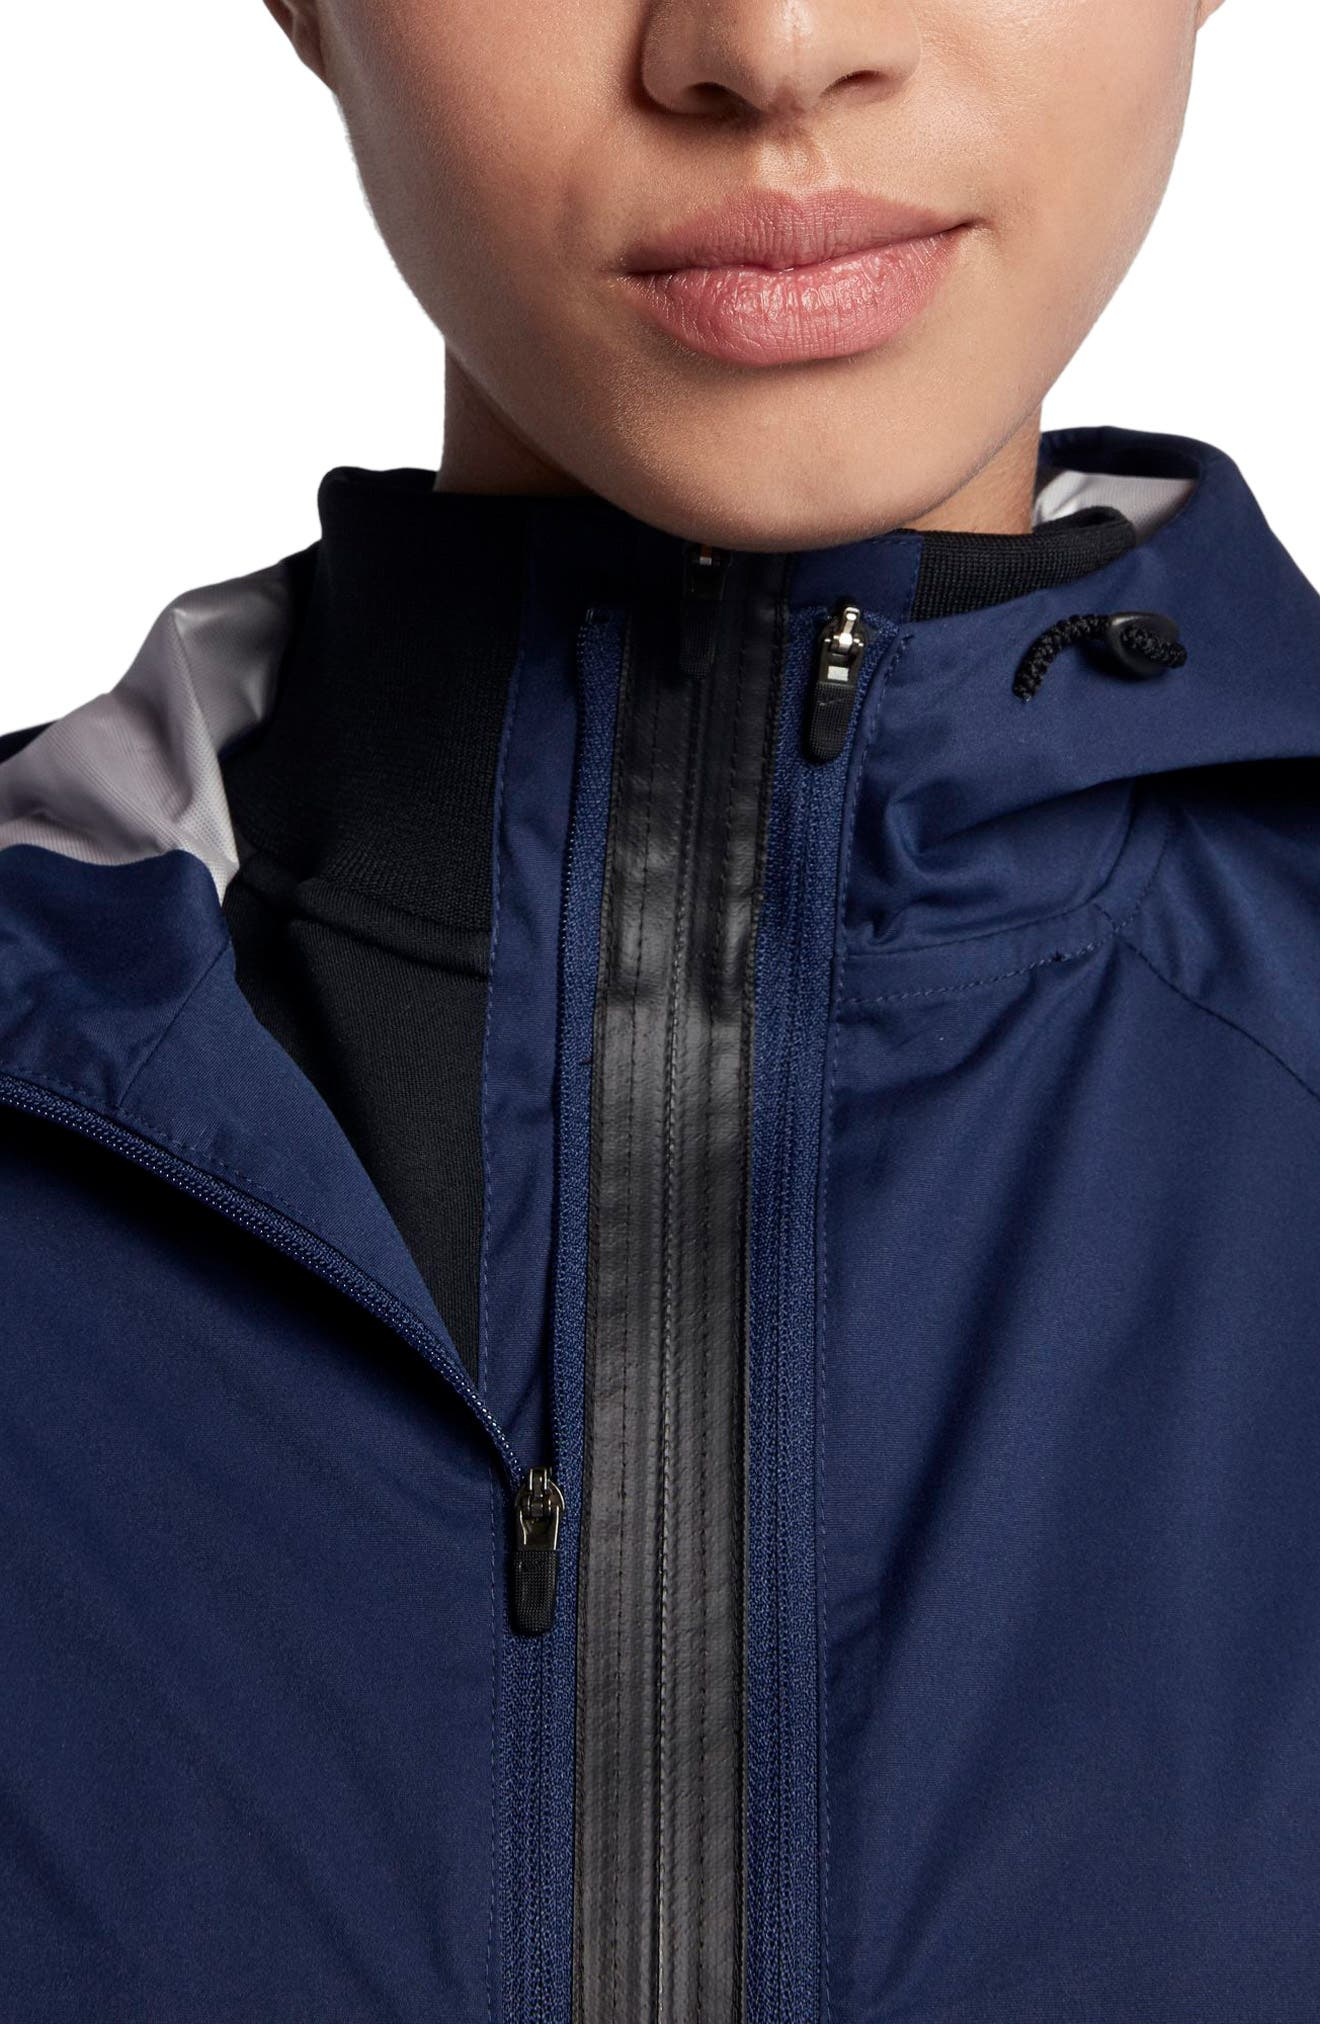 Therma Shield 2-in-1 Training Jacket,                             Alternate thumbnail 6, color,                             429